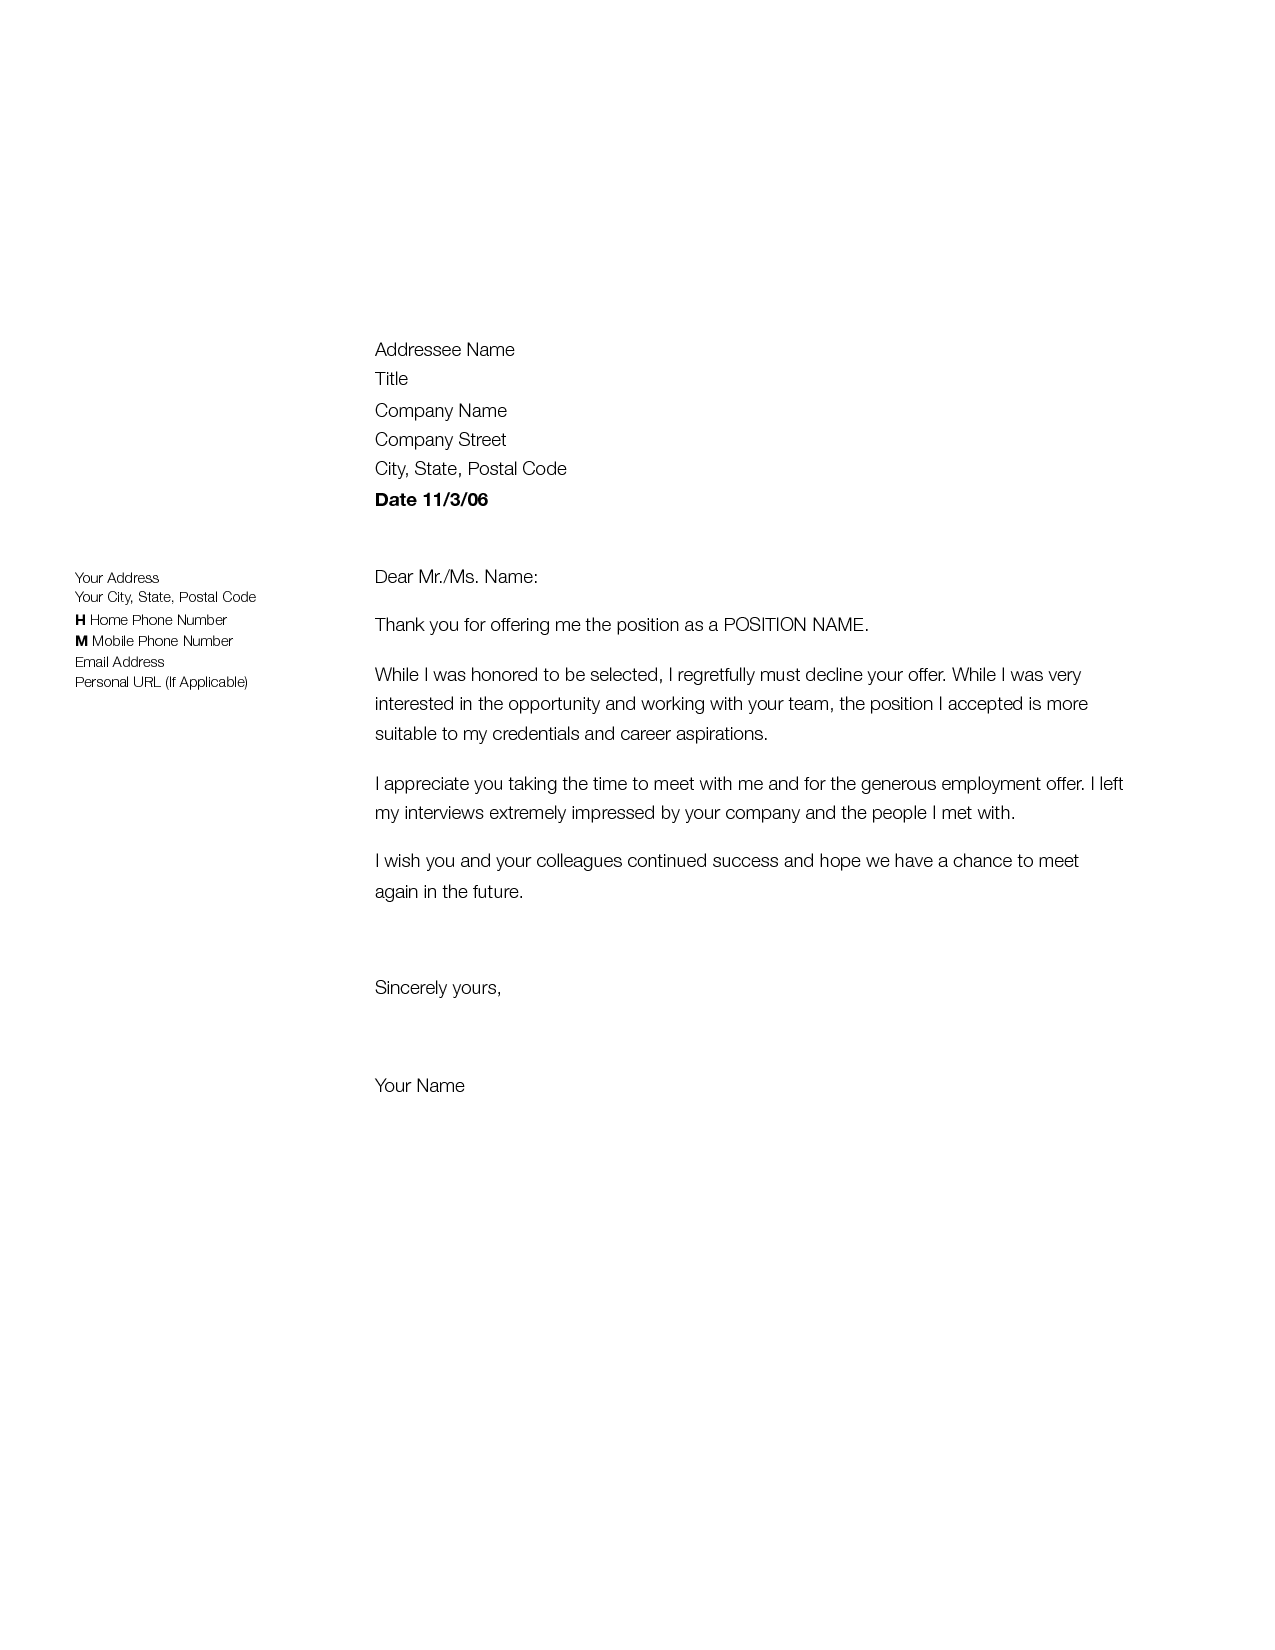 Job decline letter sample employment rejection letter to let an job decline letter sample employment rejection letter to let an employer know that you are not accepting a job offer spiritdancerdesigns